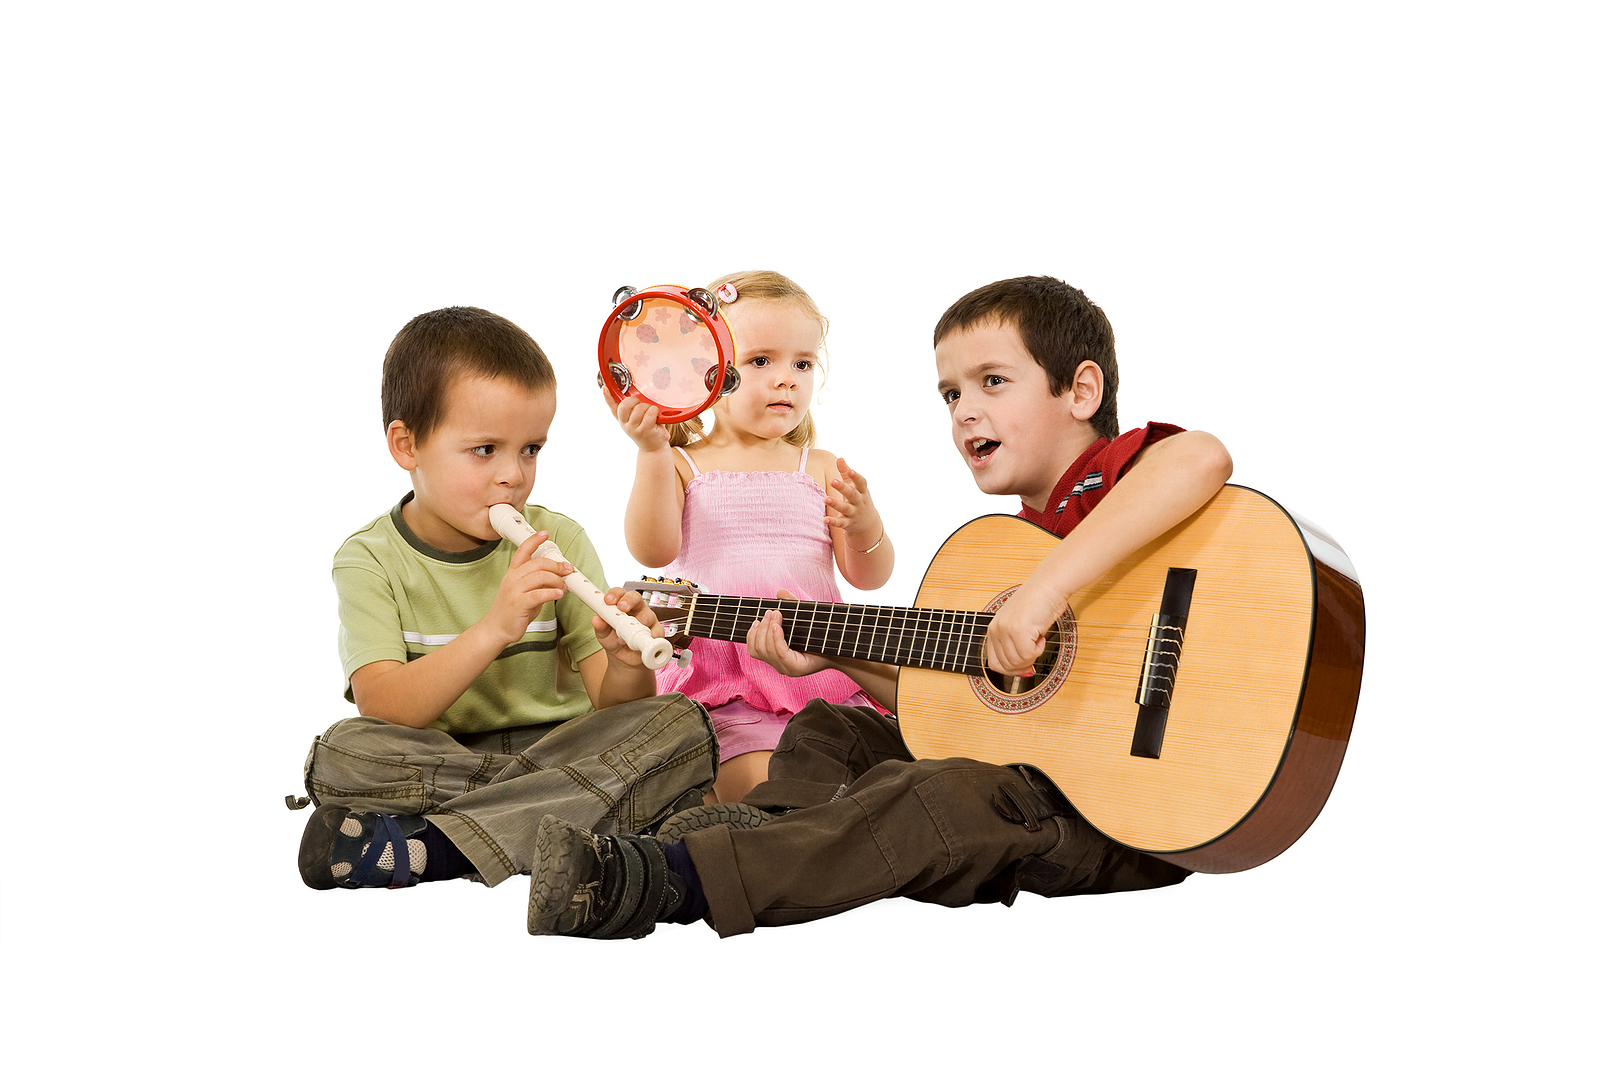 6 Benefits of Getting Your Children Involved in Music